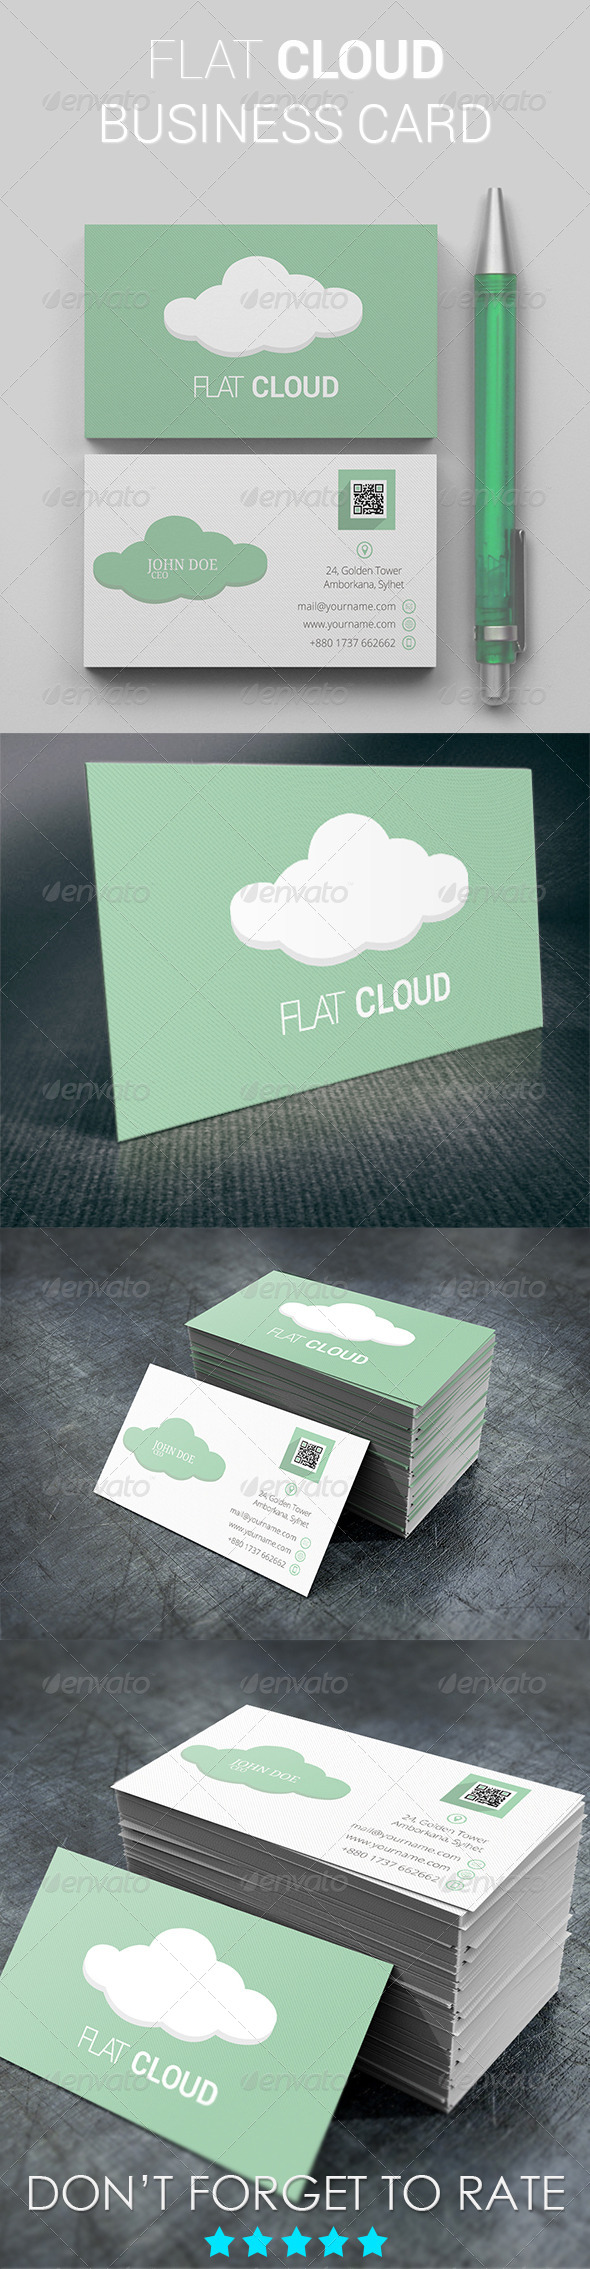 GraphicRiver Flat Cloud Business Card 5422456